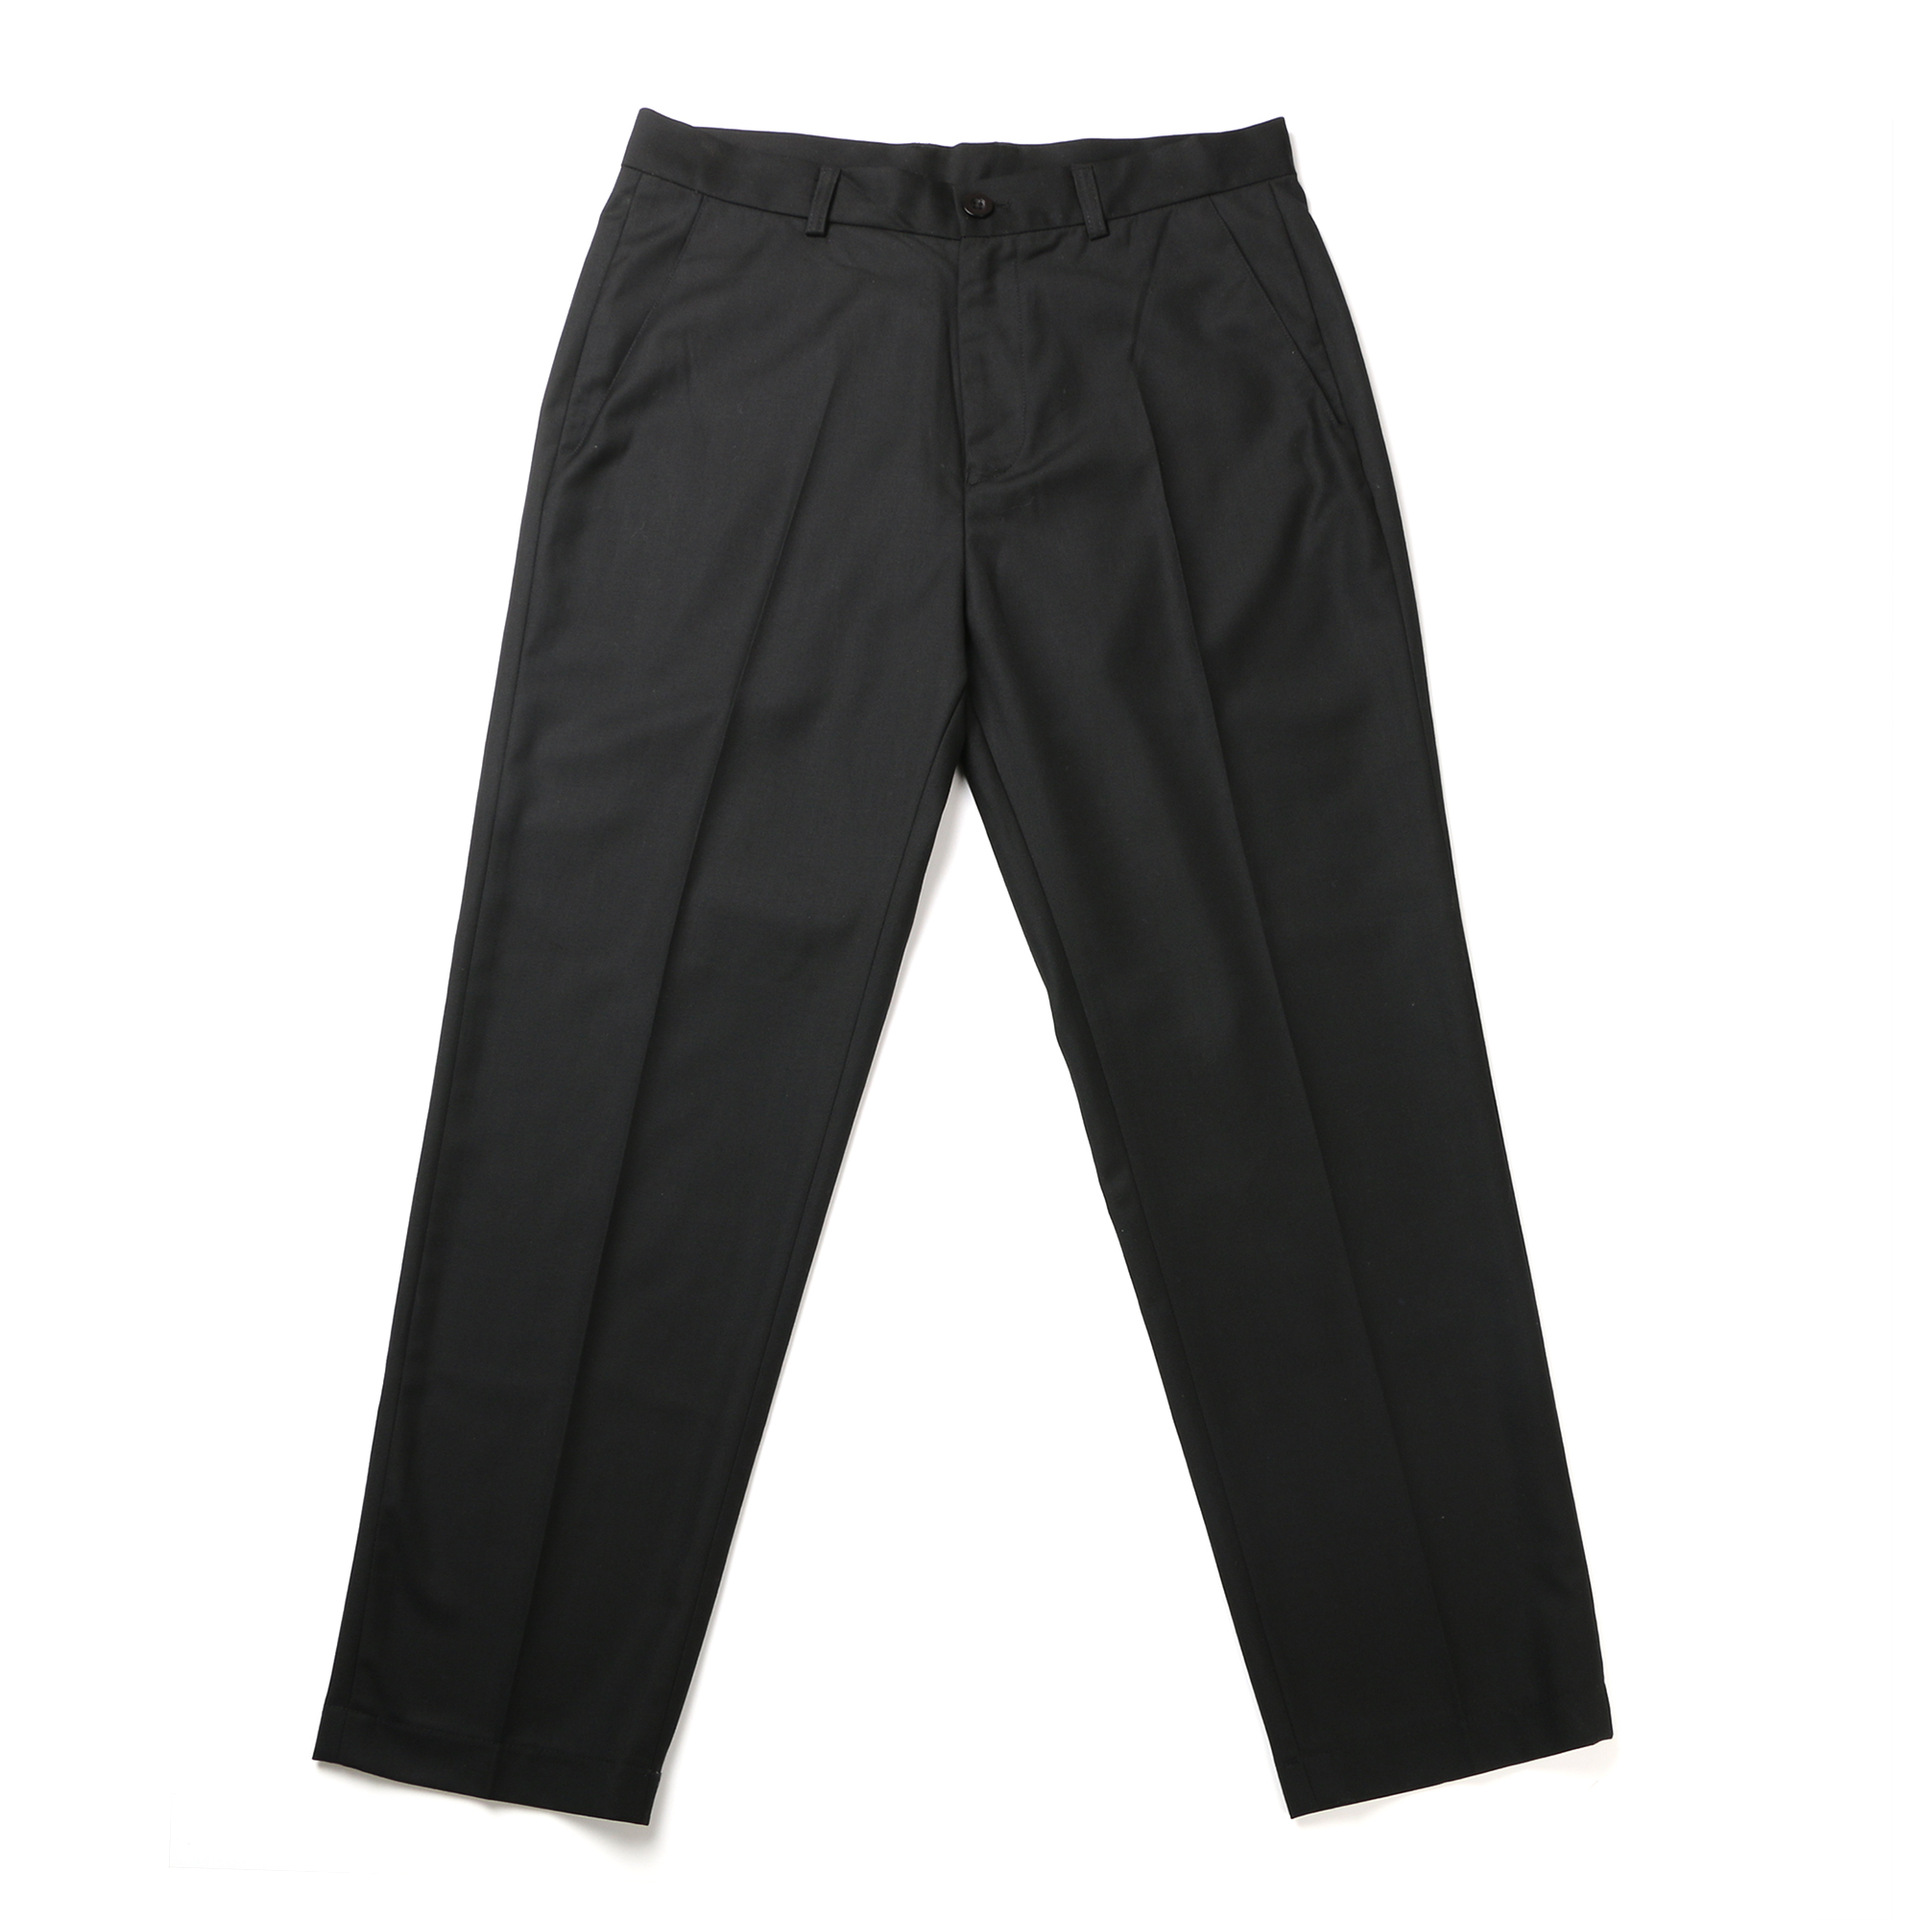 19ss Capri Casual Trousers Hot Raphe Japanese-style Dark Gray Black And White With Pattern South Korea Suit Pants Casual Pants